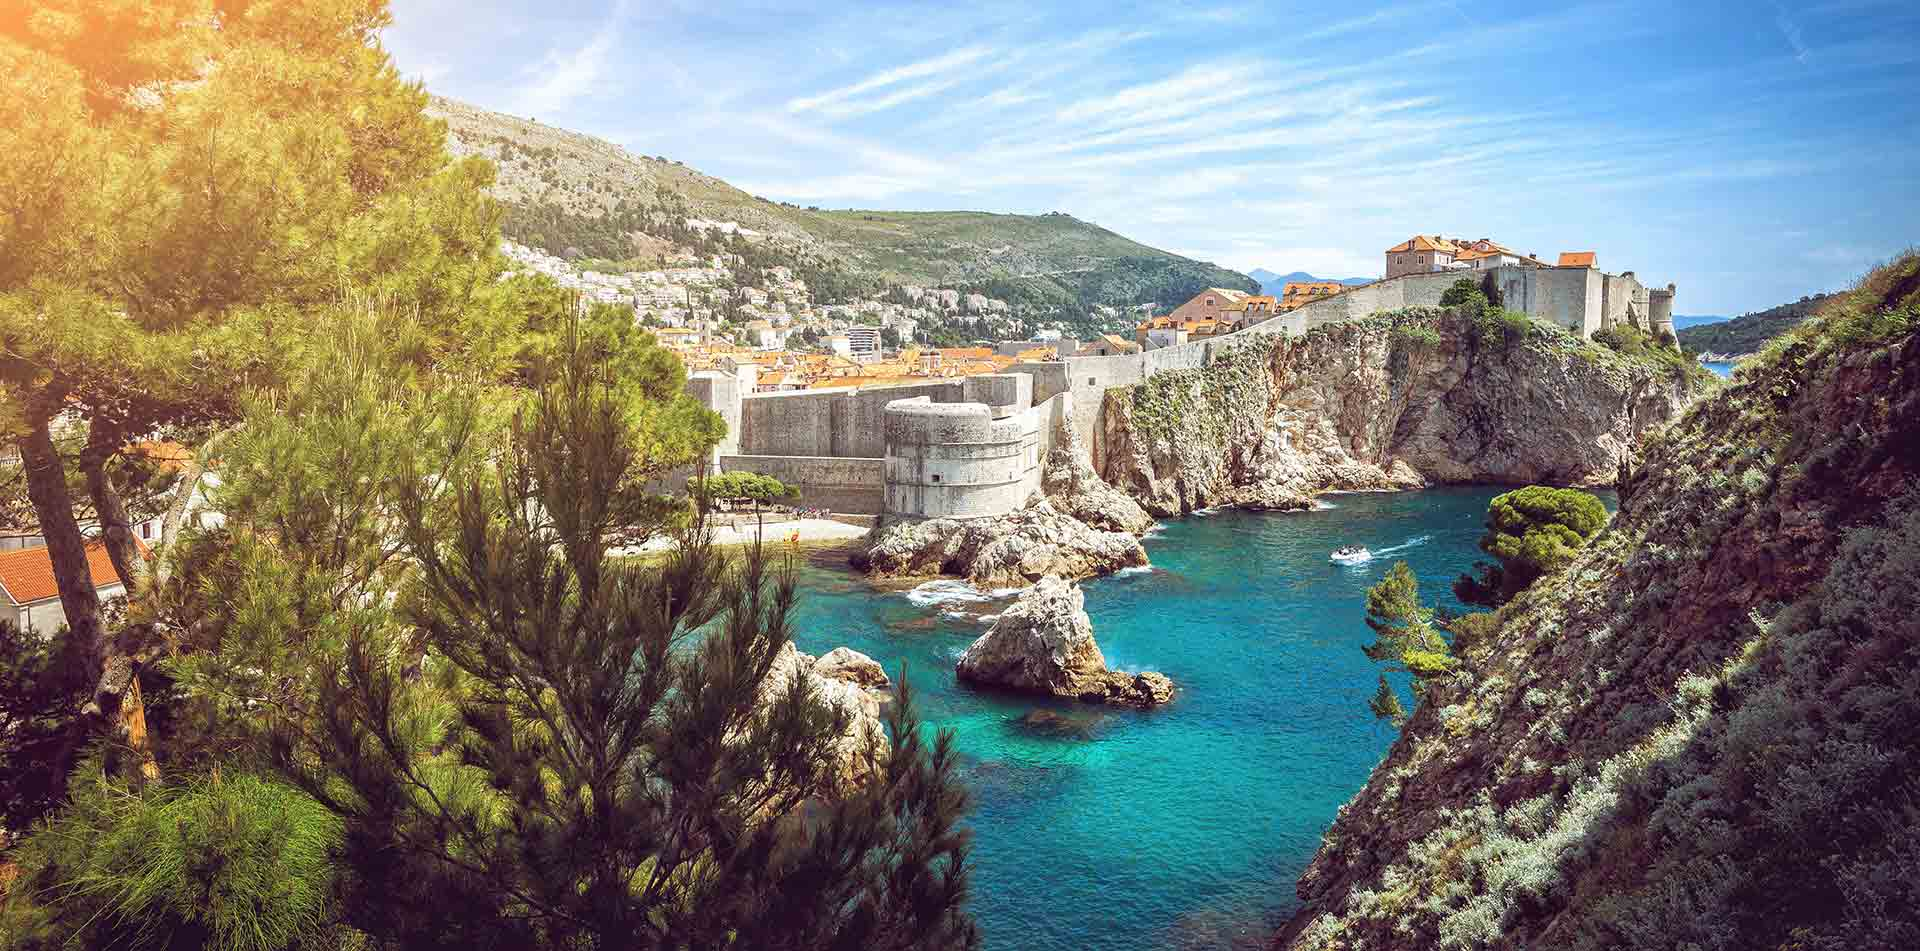 Europe Croatia Dubrovnik scenic rocky cliff beautiful Adriatic sea old historic hillside town - luxury vacation destinations